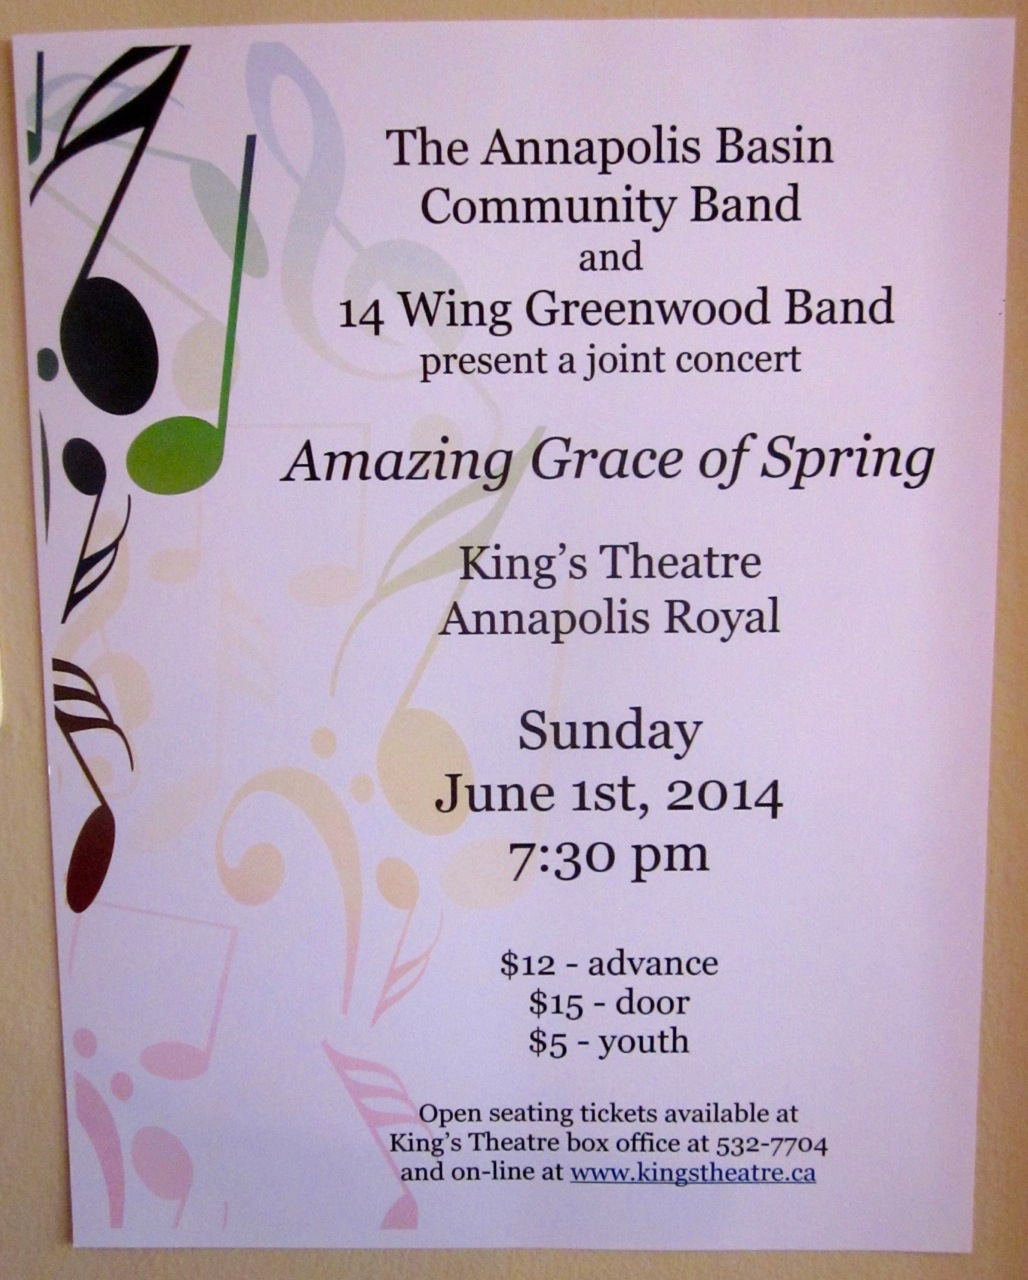 Spring concert this Sunday June 1st